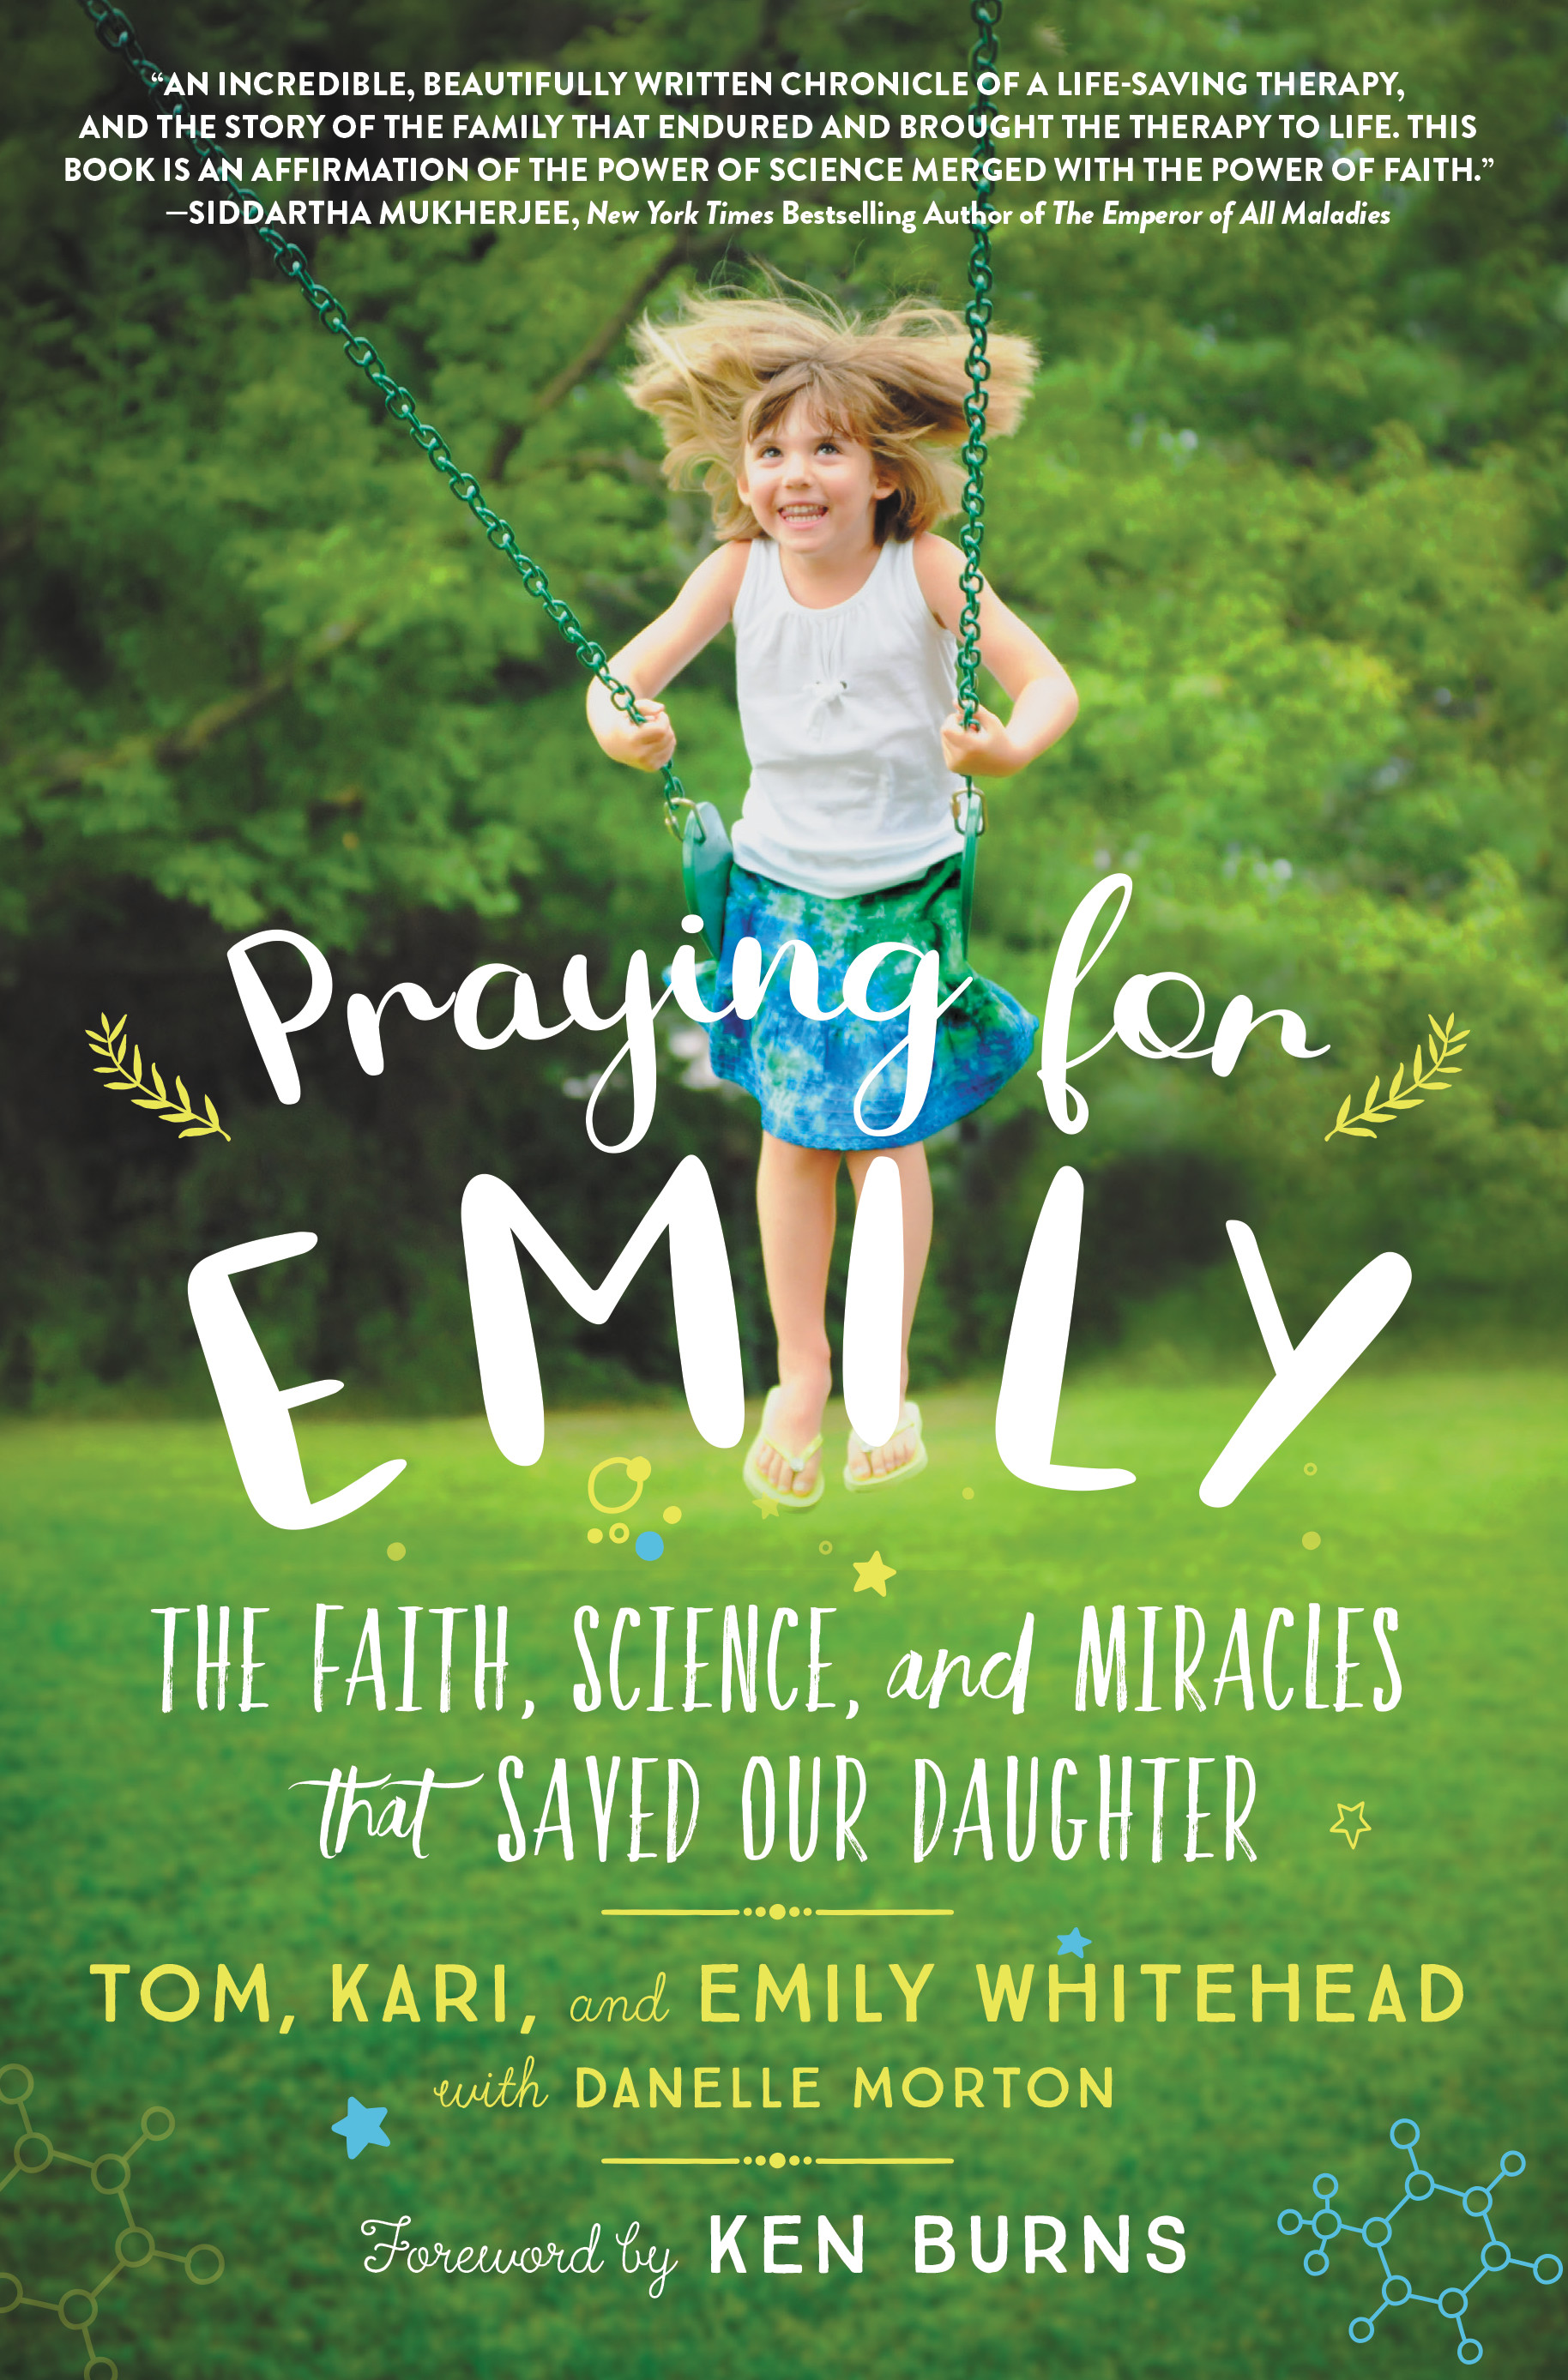 Praying For Emily by Tom, Kari, and Emily Whitehead